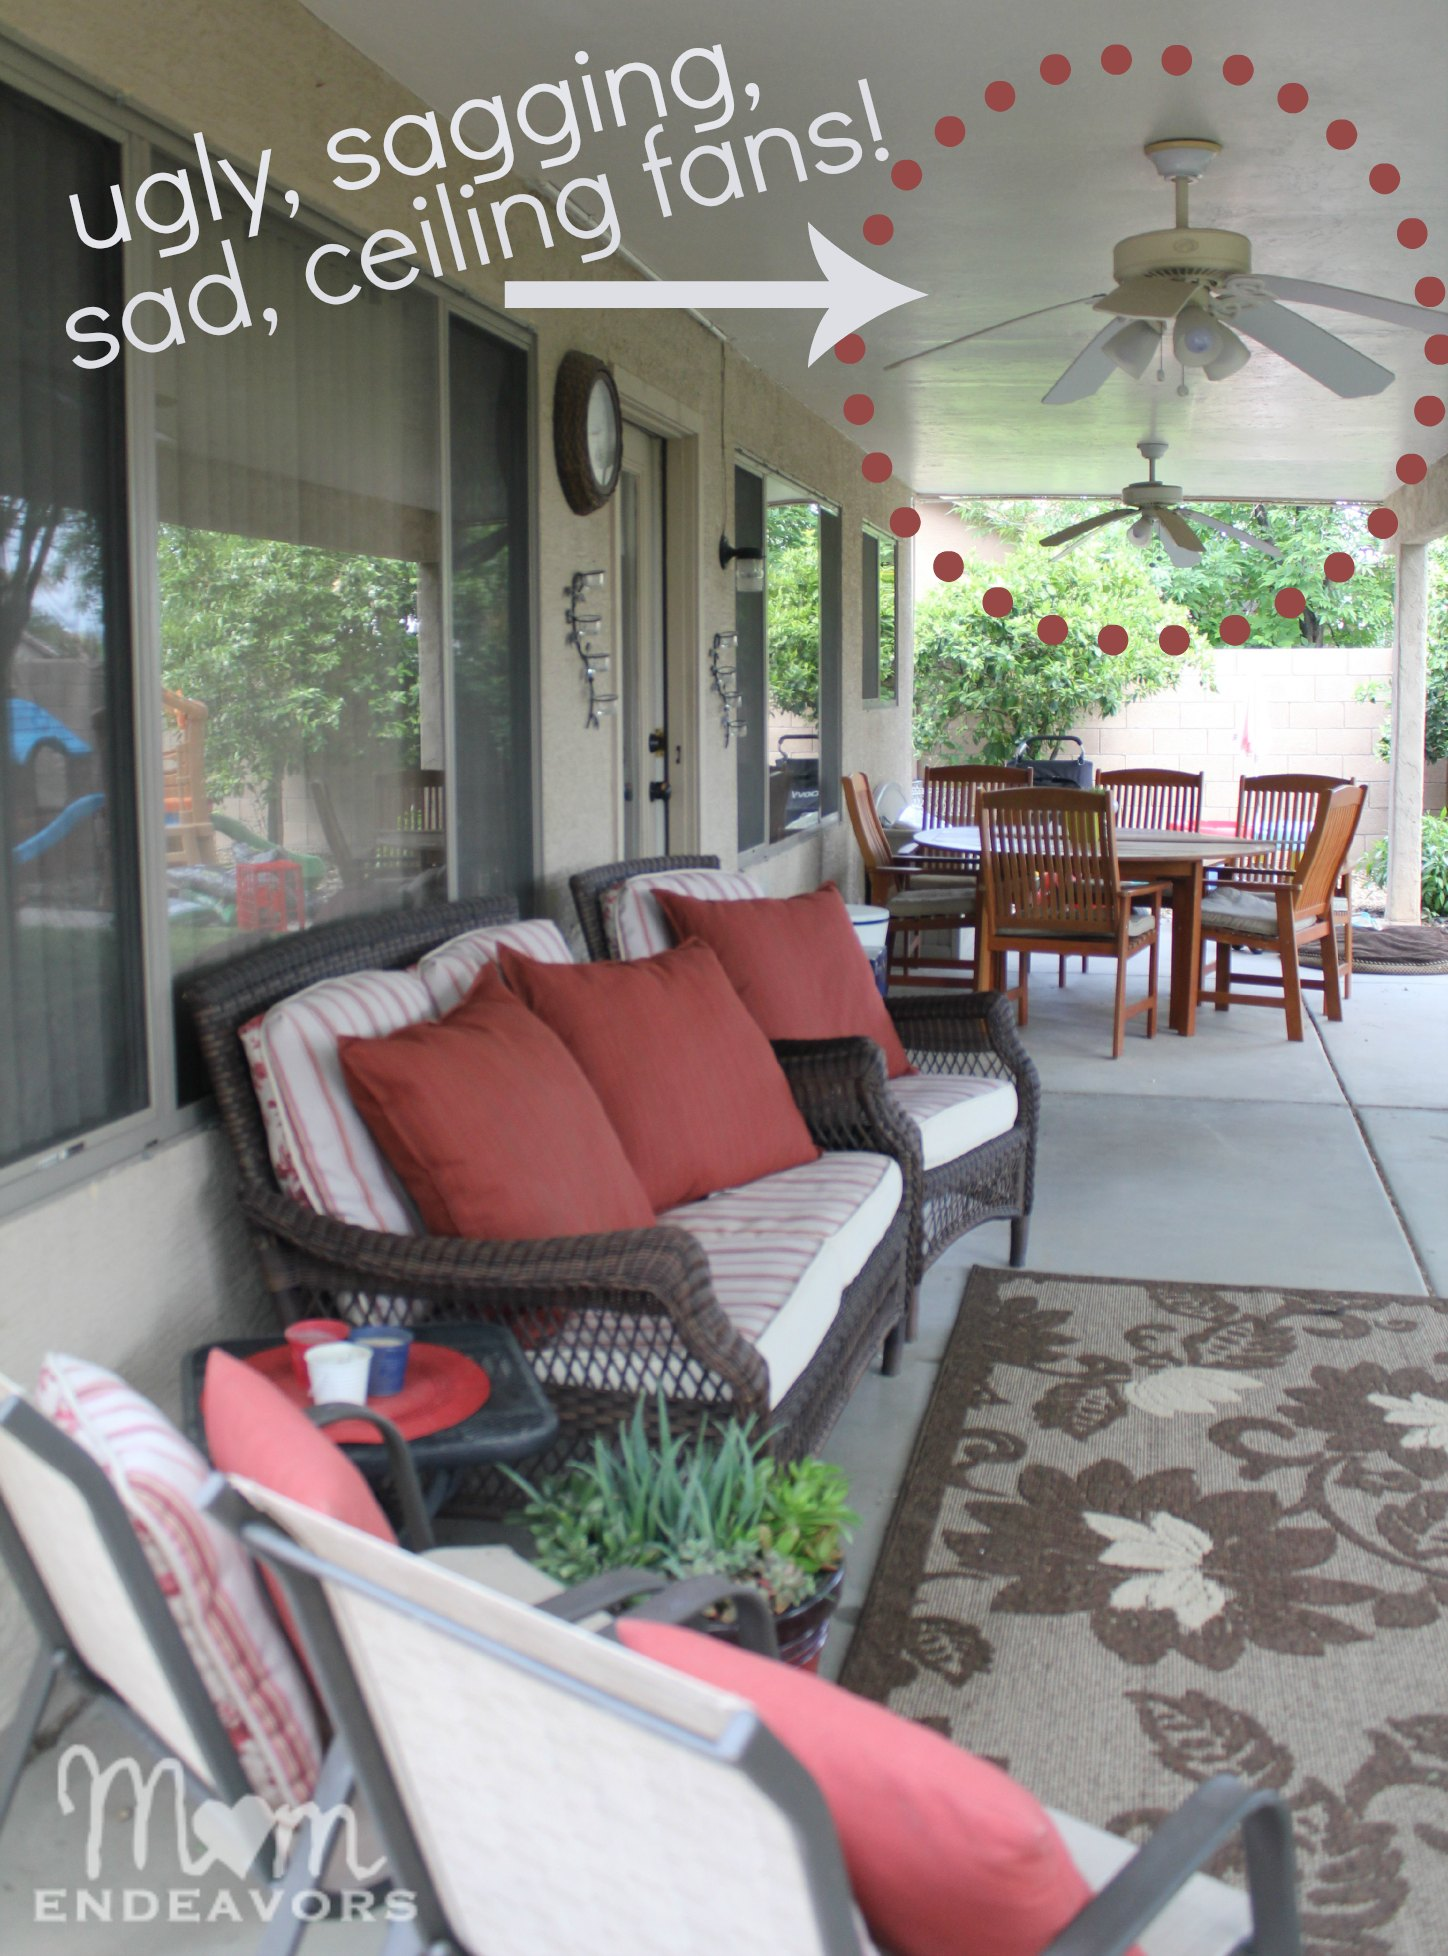 Ceiling Fans With Good Lighting Patio Lighting Ceiling Fan Makeover Lowescreator